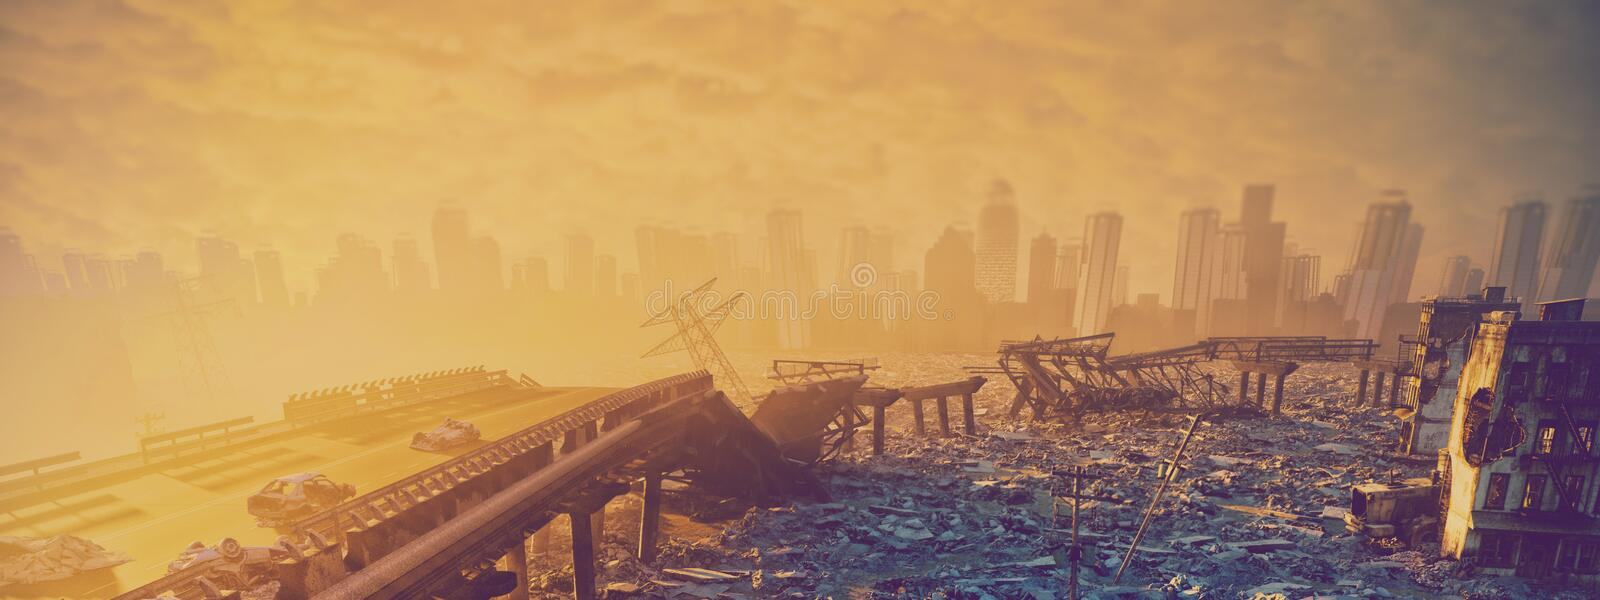 Ruins of the city. Apocalyptic landscape.3d illustration concept stock illustration